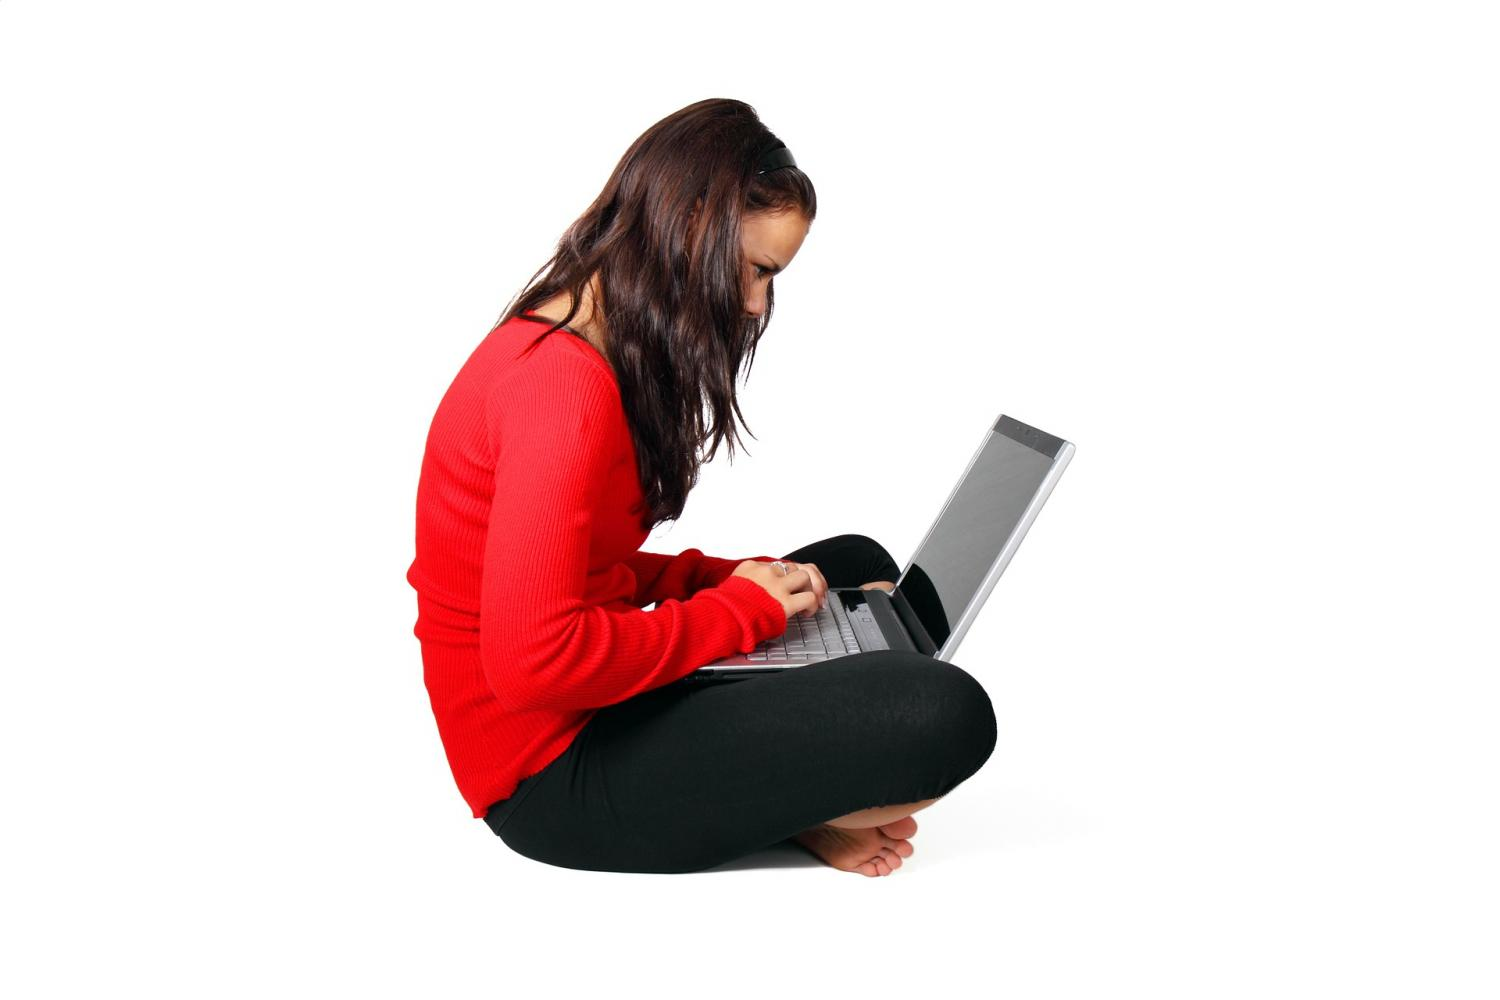 study results suggest improving posture help reduce depression credit cc0 public